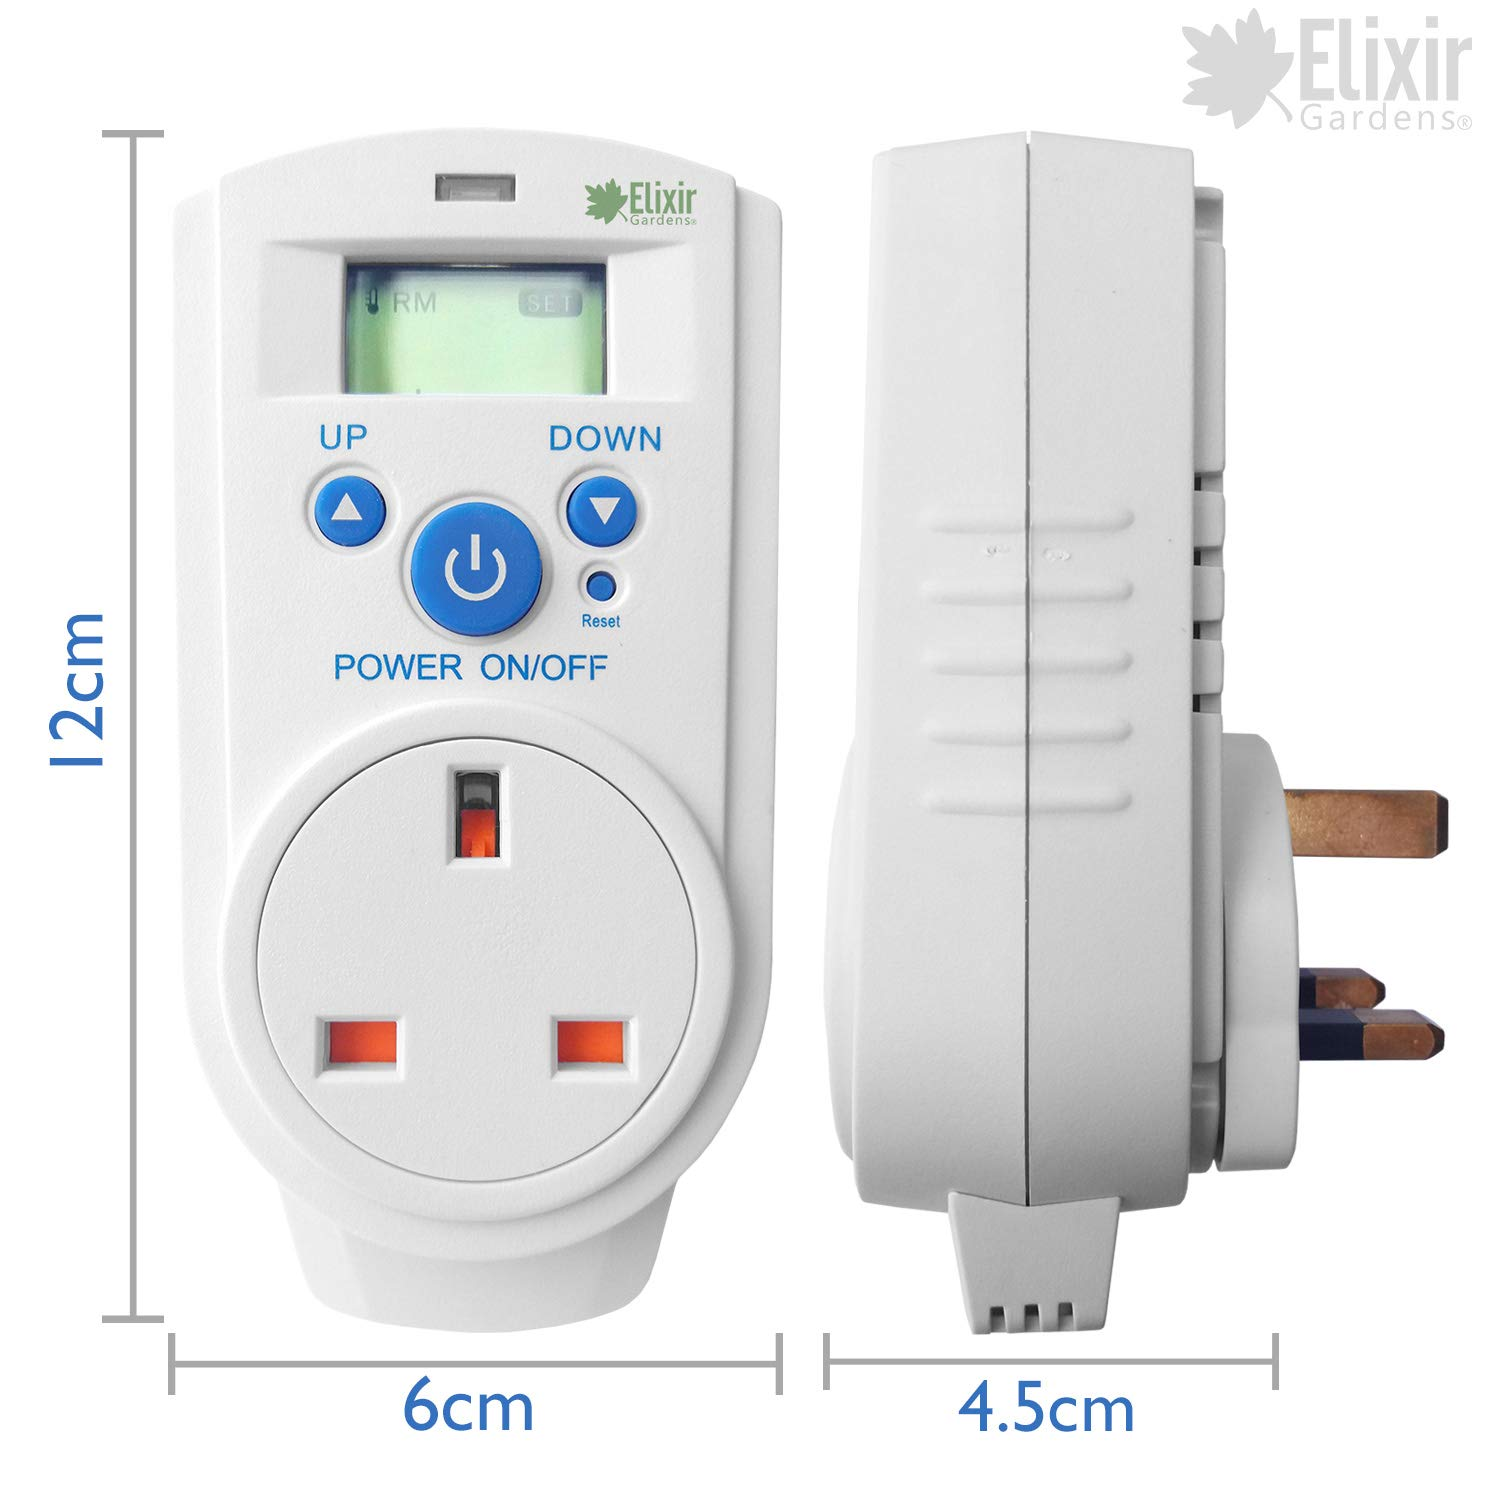 Thermo Guard Digital Control Plugin Thermostat Th 928t Plug Not A Socket Feeding The Boat Ac System Garden Outdoors